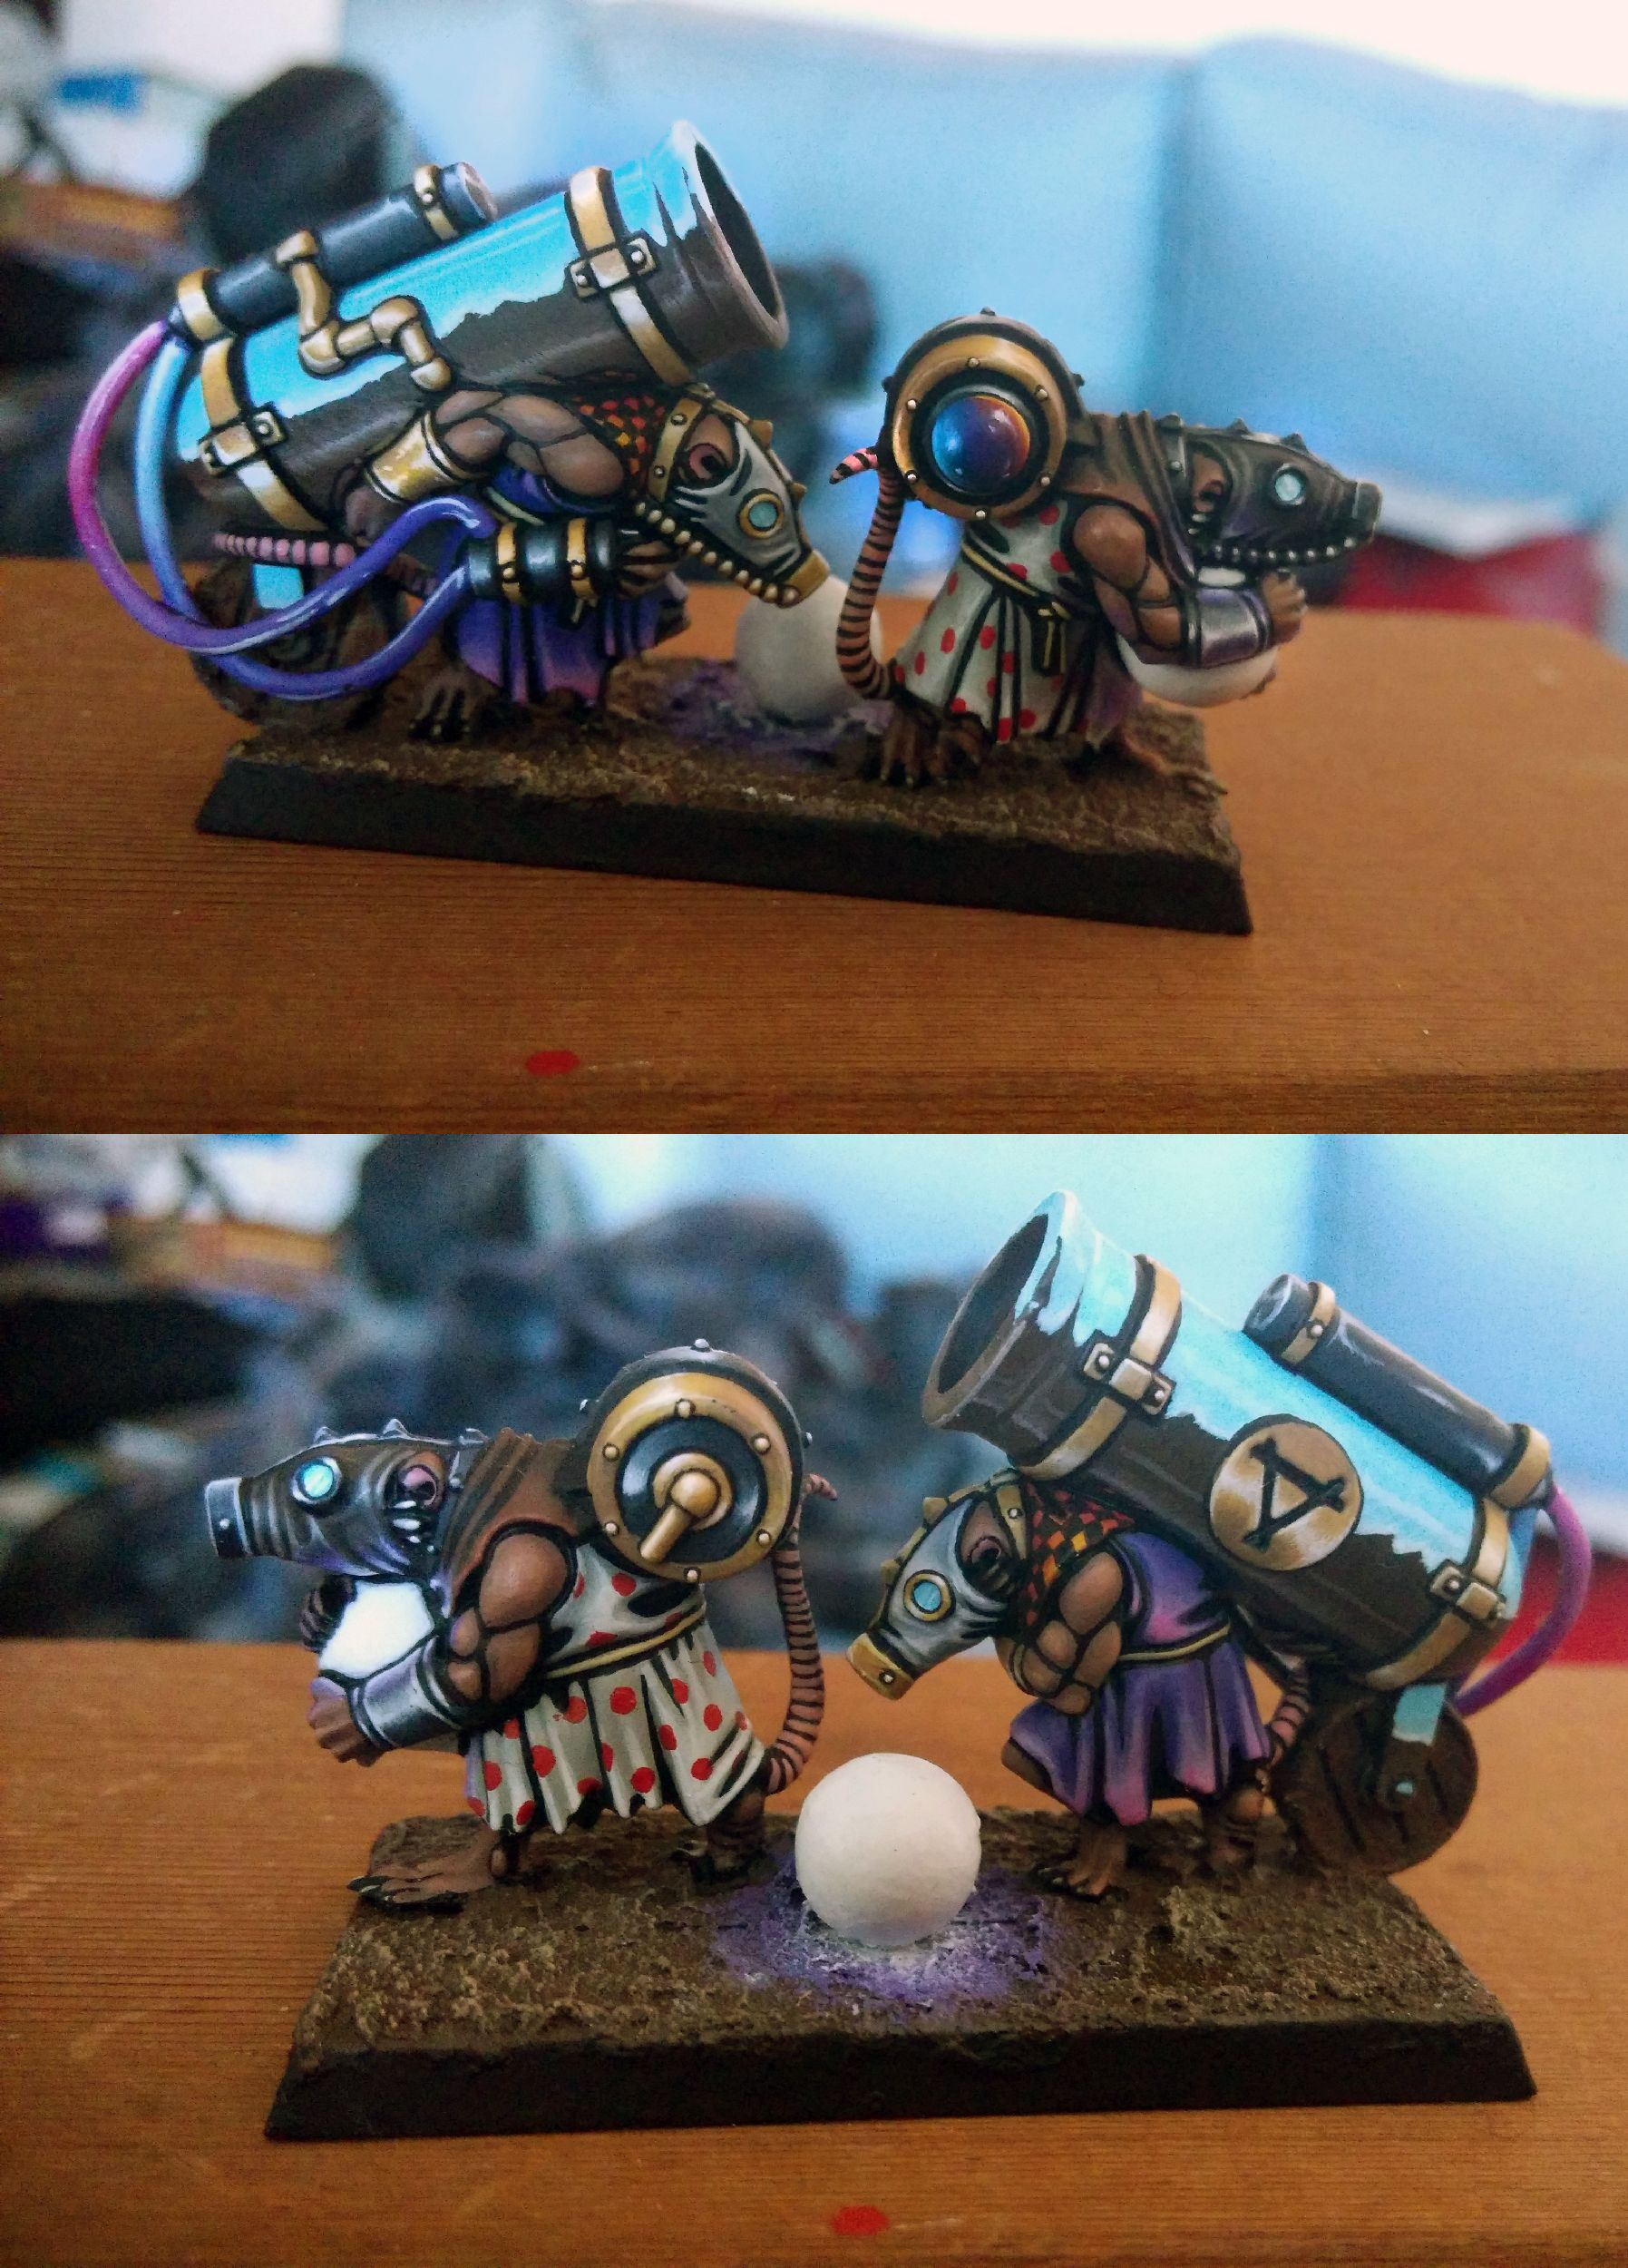 Awesome NMM on this skaven model.